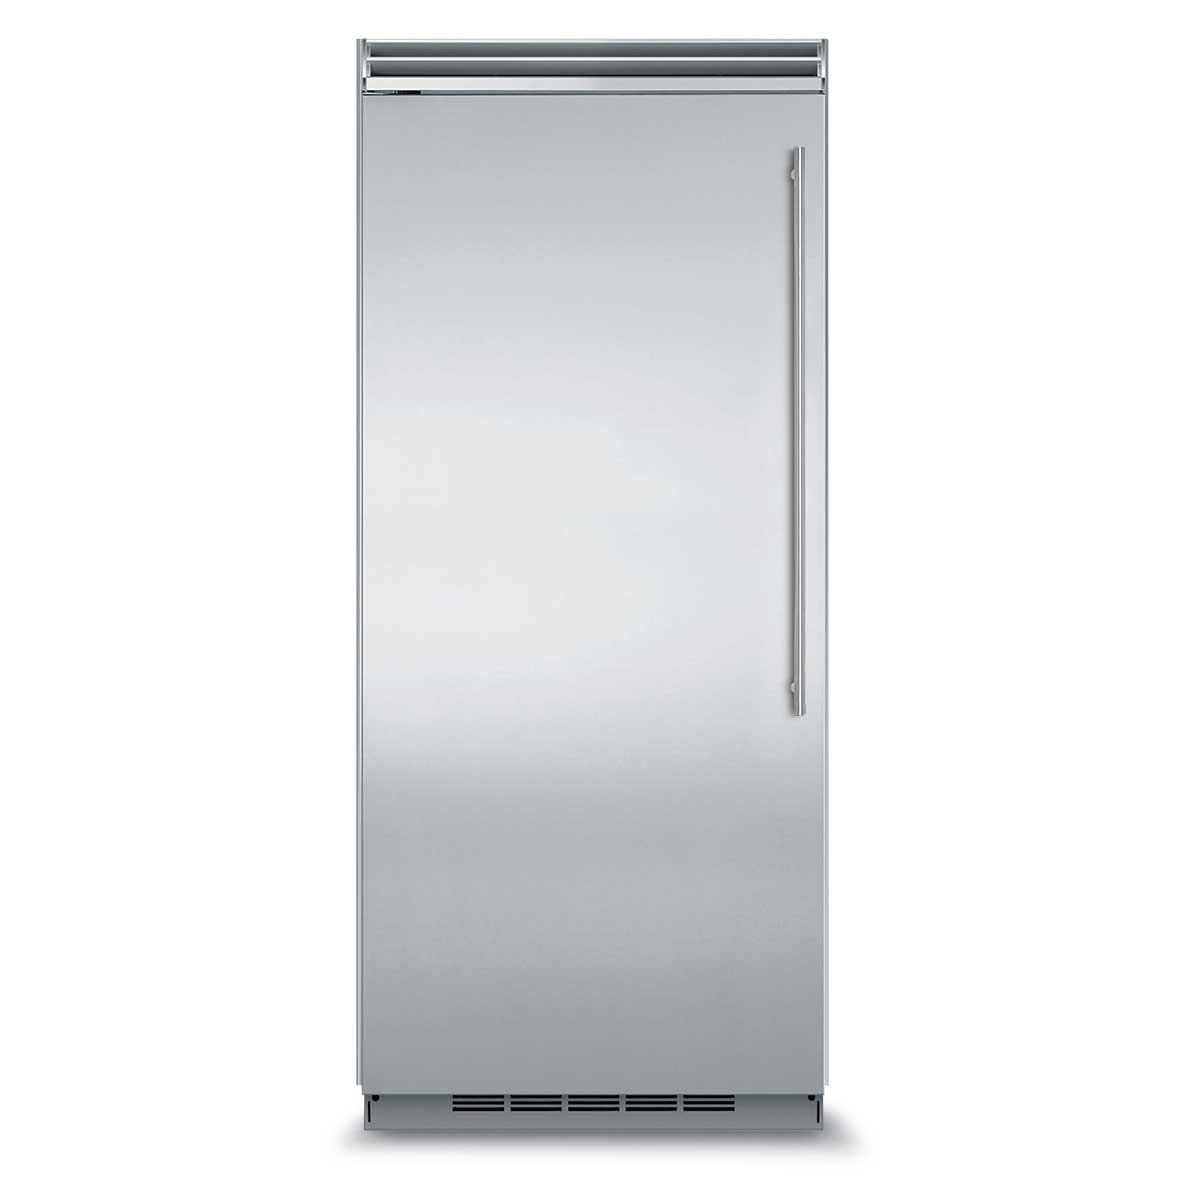 "Marvel  Marvel Professional Built-In 36"" All Freezer- Solid Stainless Steel Door   Left Hinge, Slim Designer Handle"